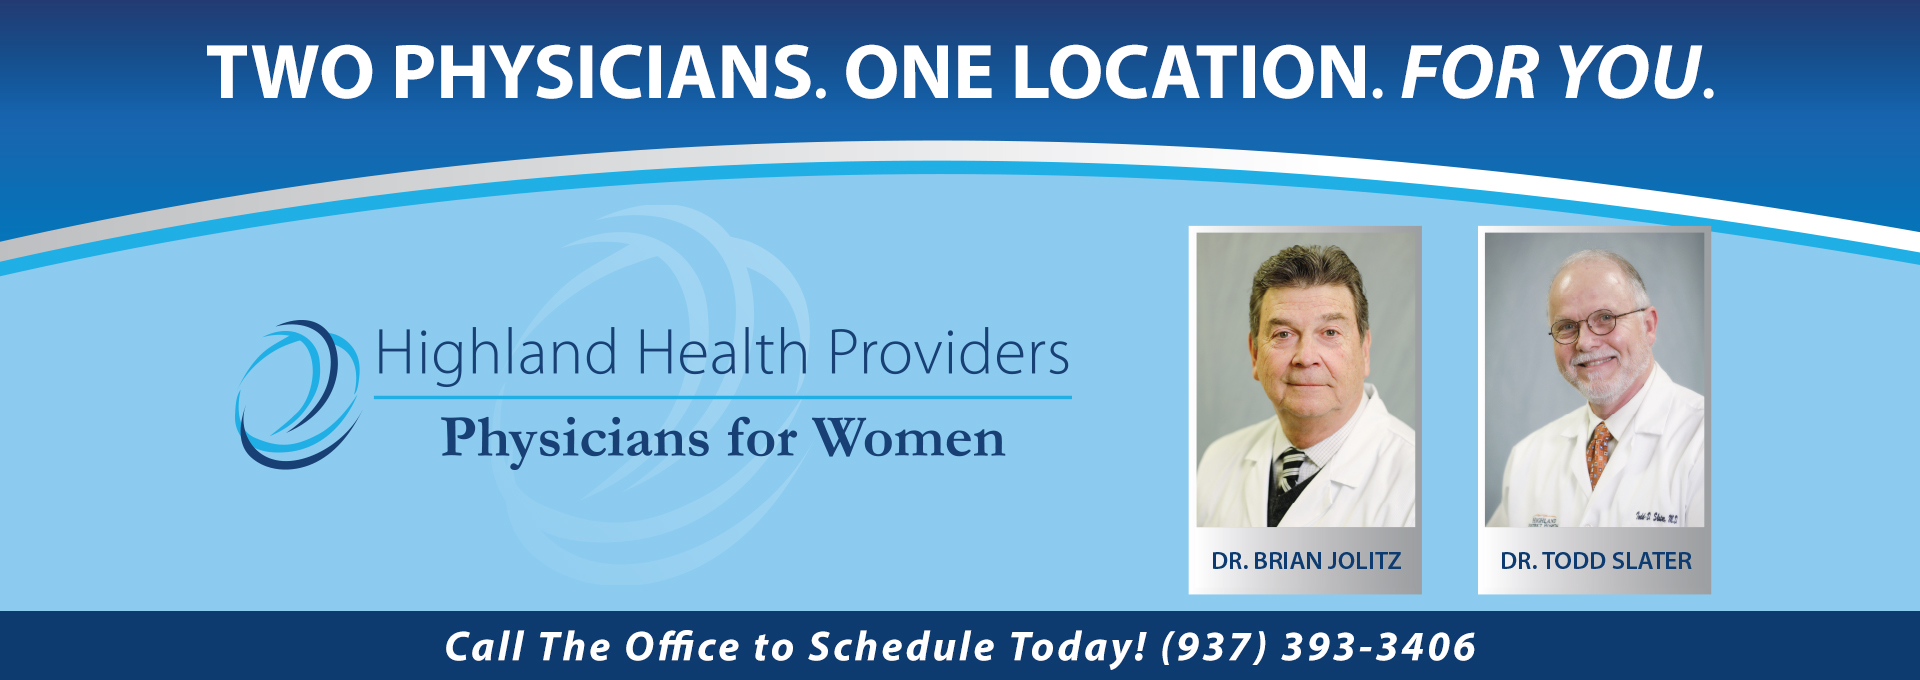 Physicians for Women slider